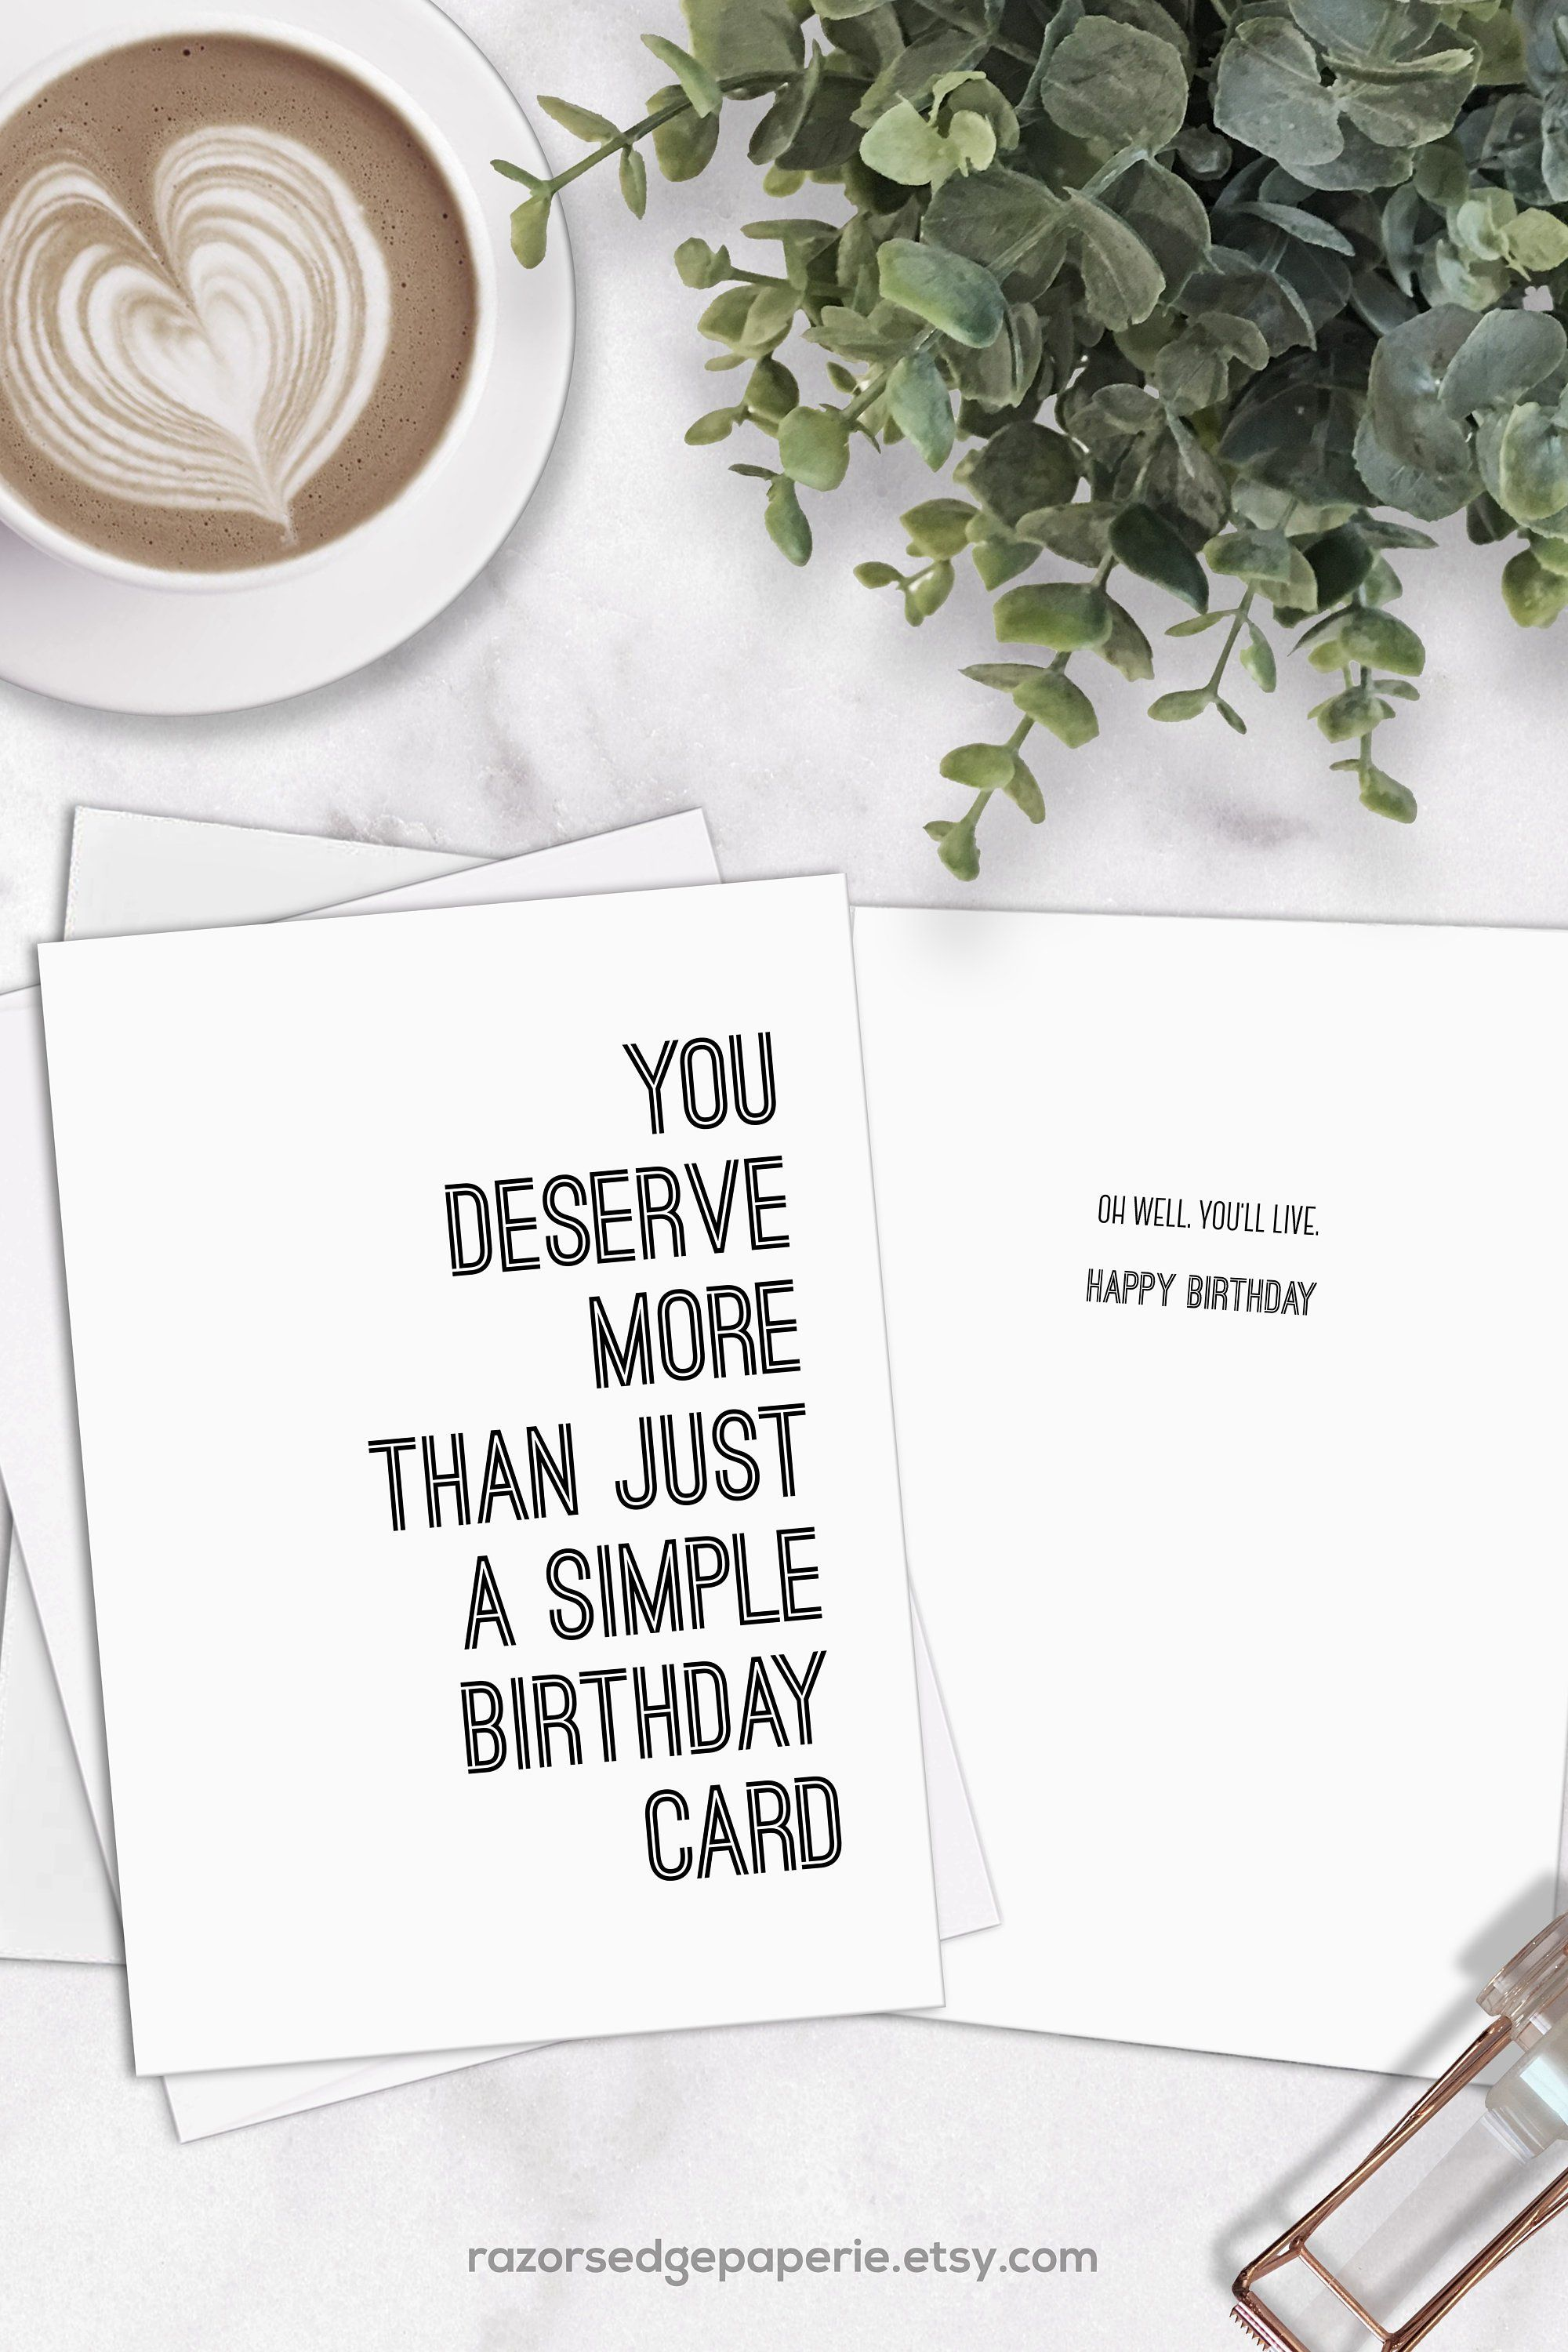 photograph regarding Free Printable Funny Birthday Cards for Him identified as PRINTABLE Amusing Birthday Card for Him Fast Down load